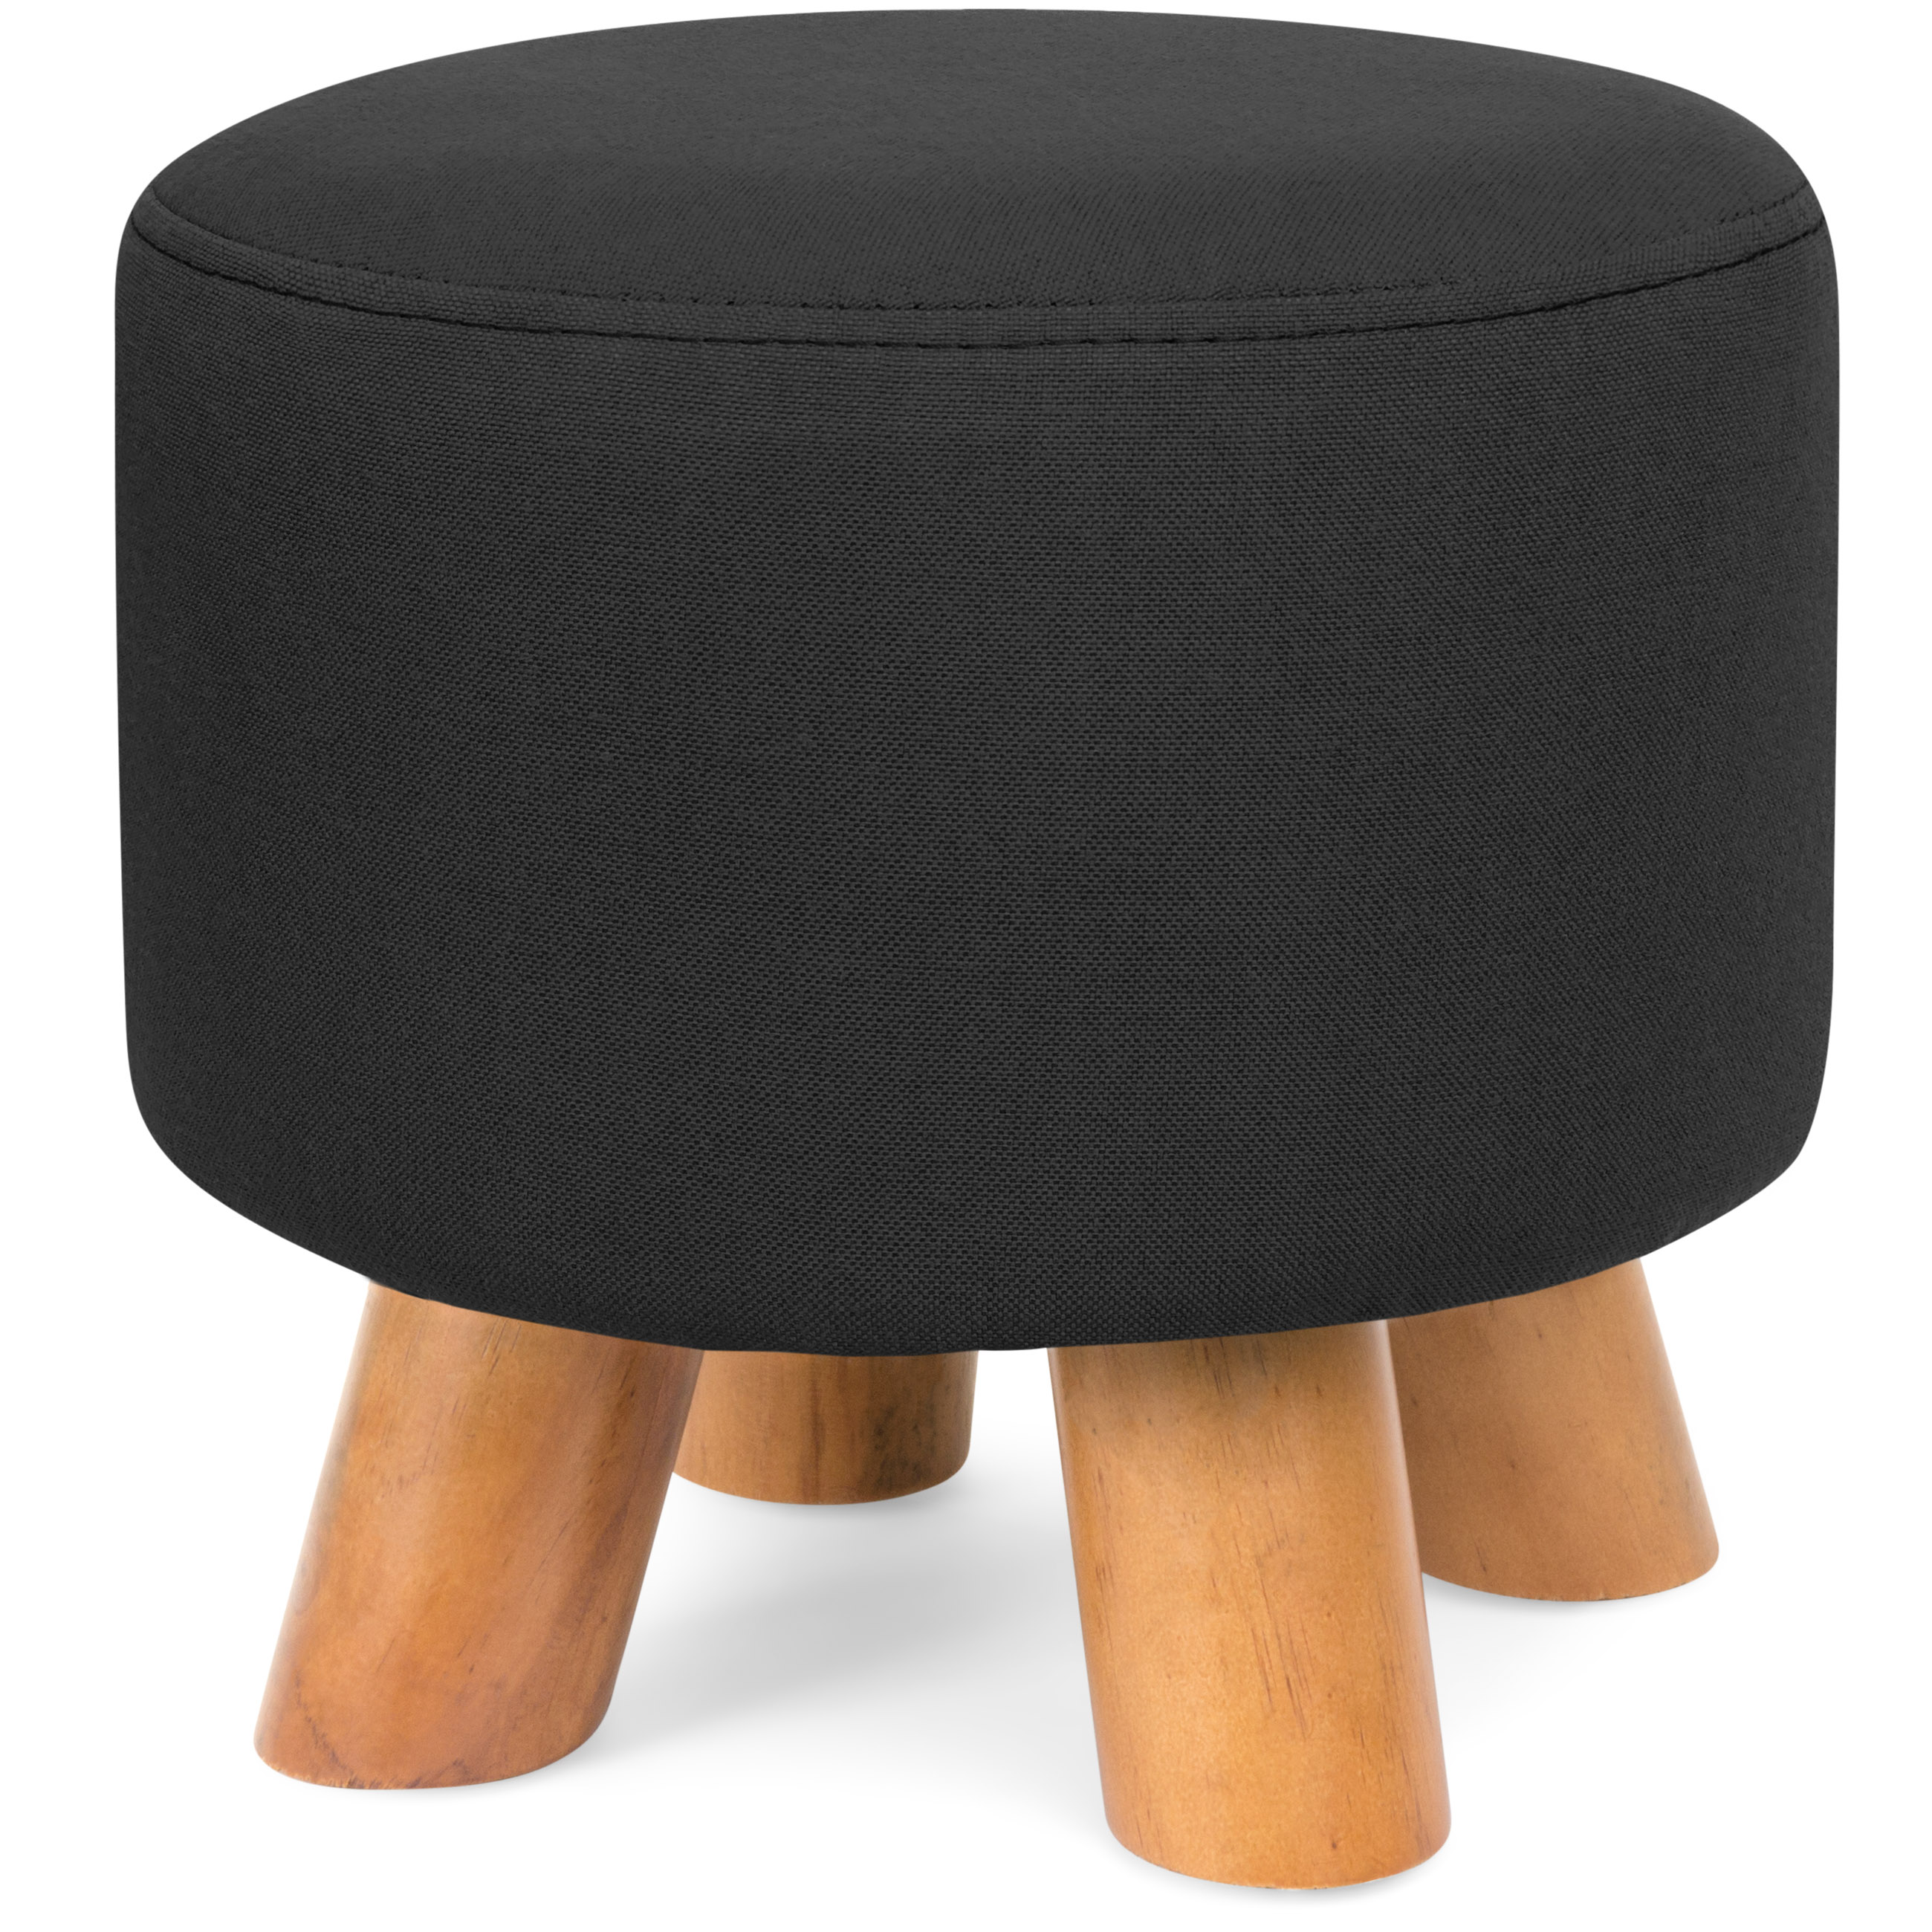 Best Choice Products Upholstered Ottoman Padded Footstool Pouf w/ Removable Linen Cover - Black